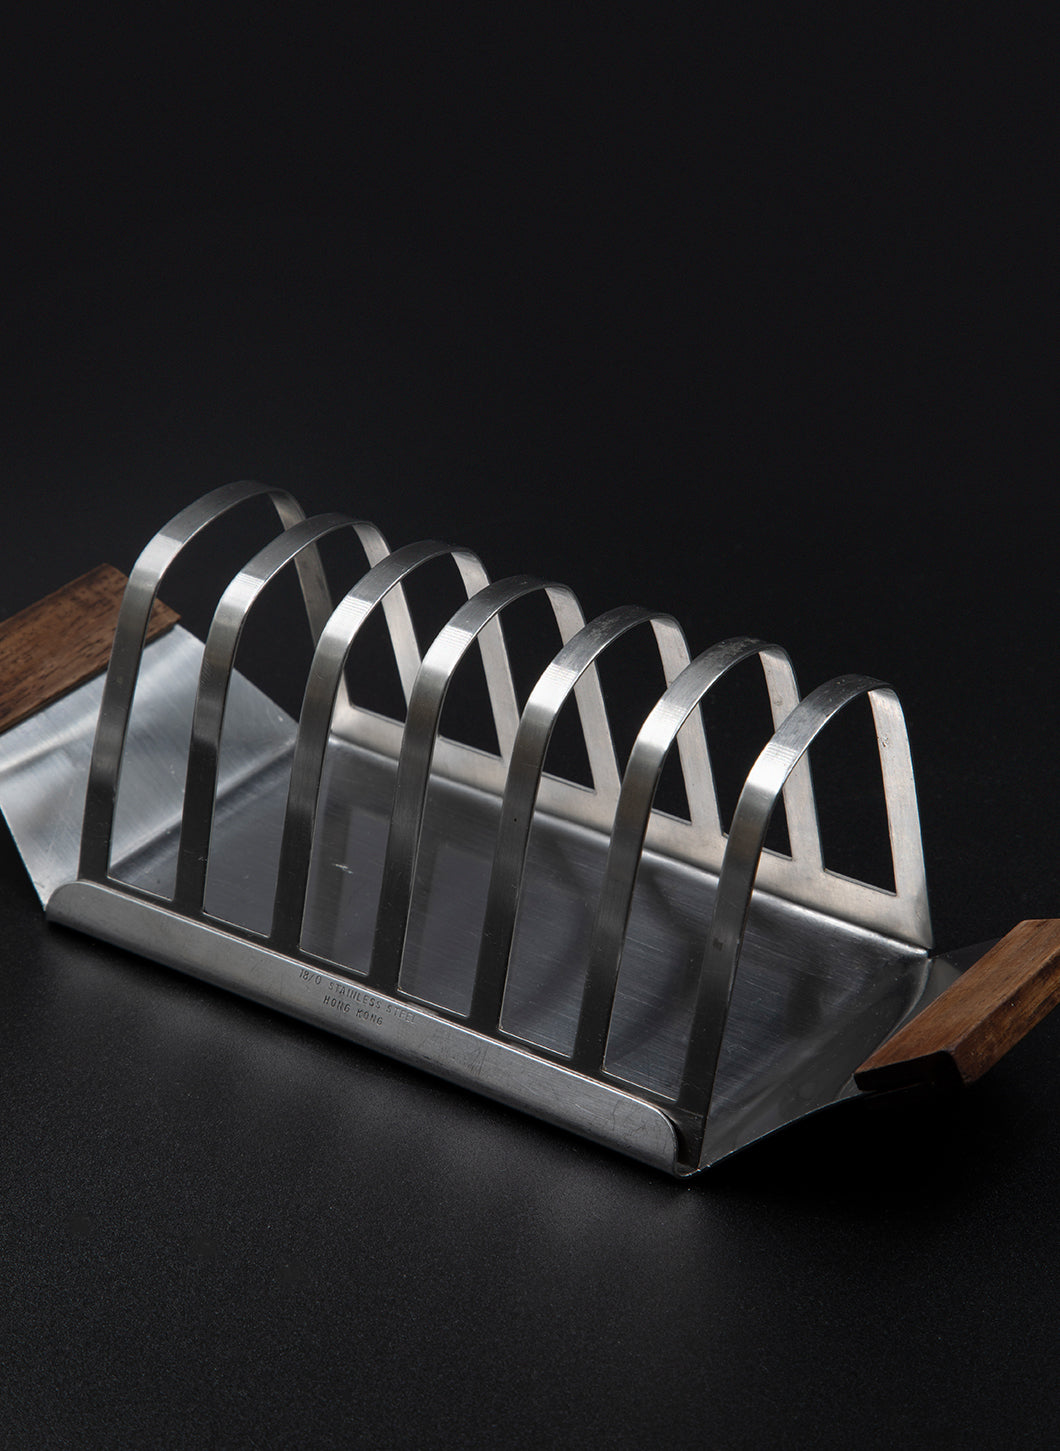 Stainless Steel Toast Rack with Wooden Handles